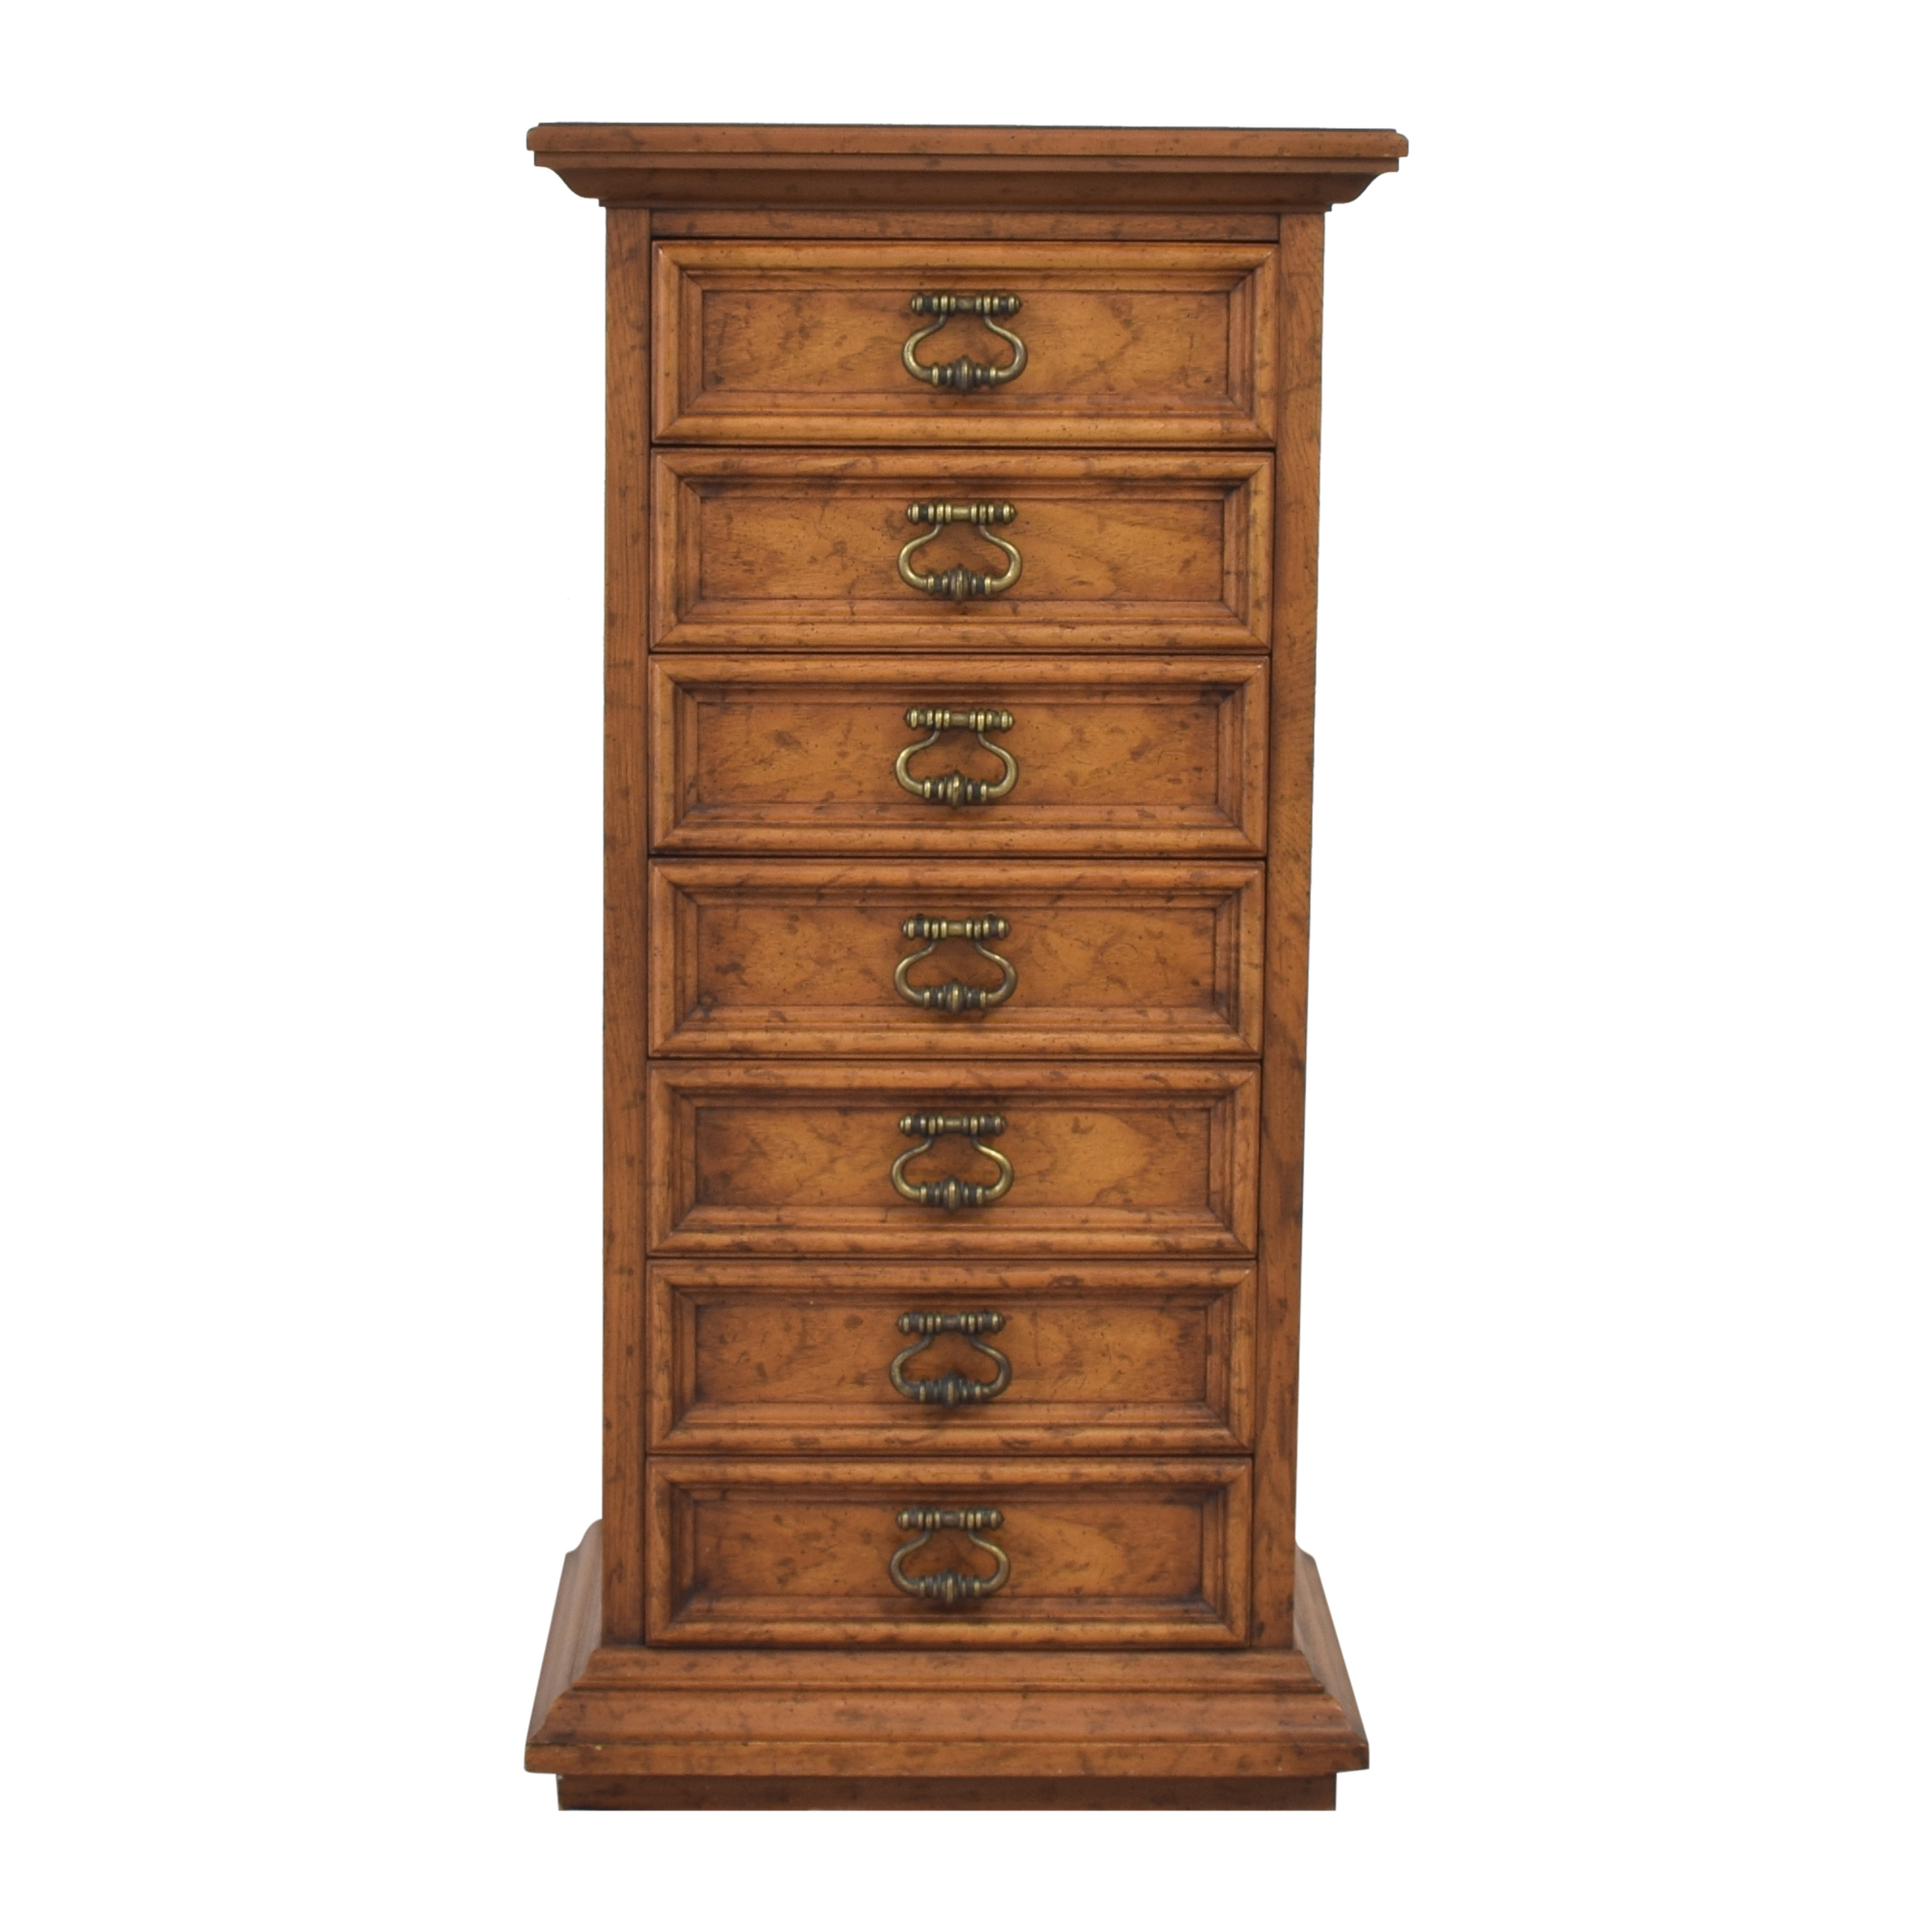 Drexel Drexel Bedroom Bureau discount